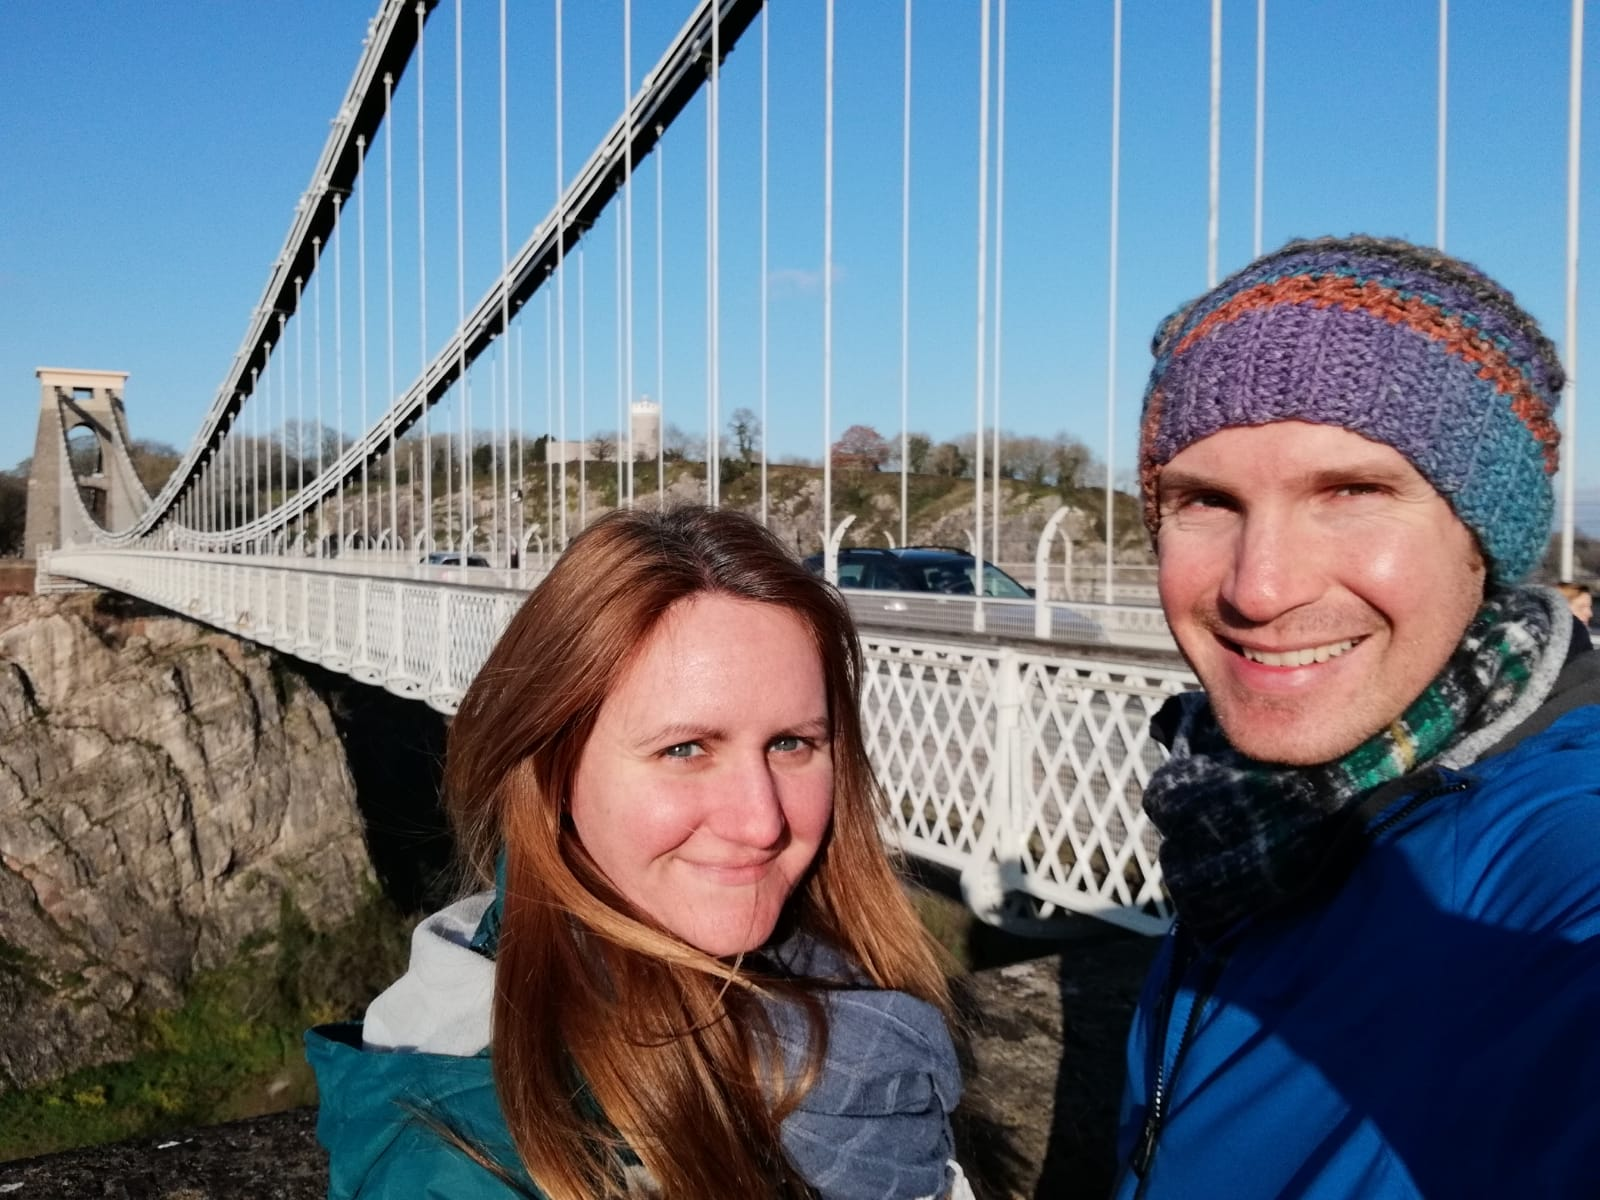 Us at Clifton Suspension Bridge, Bristol